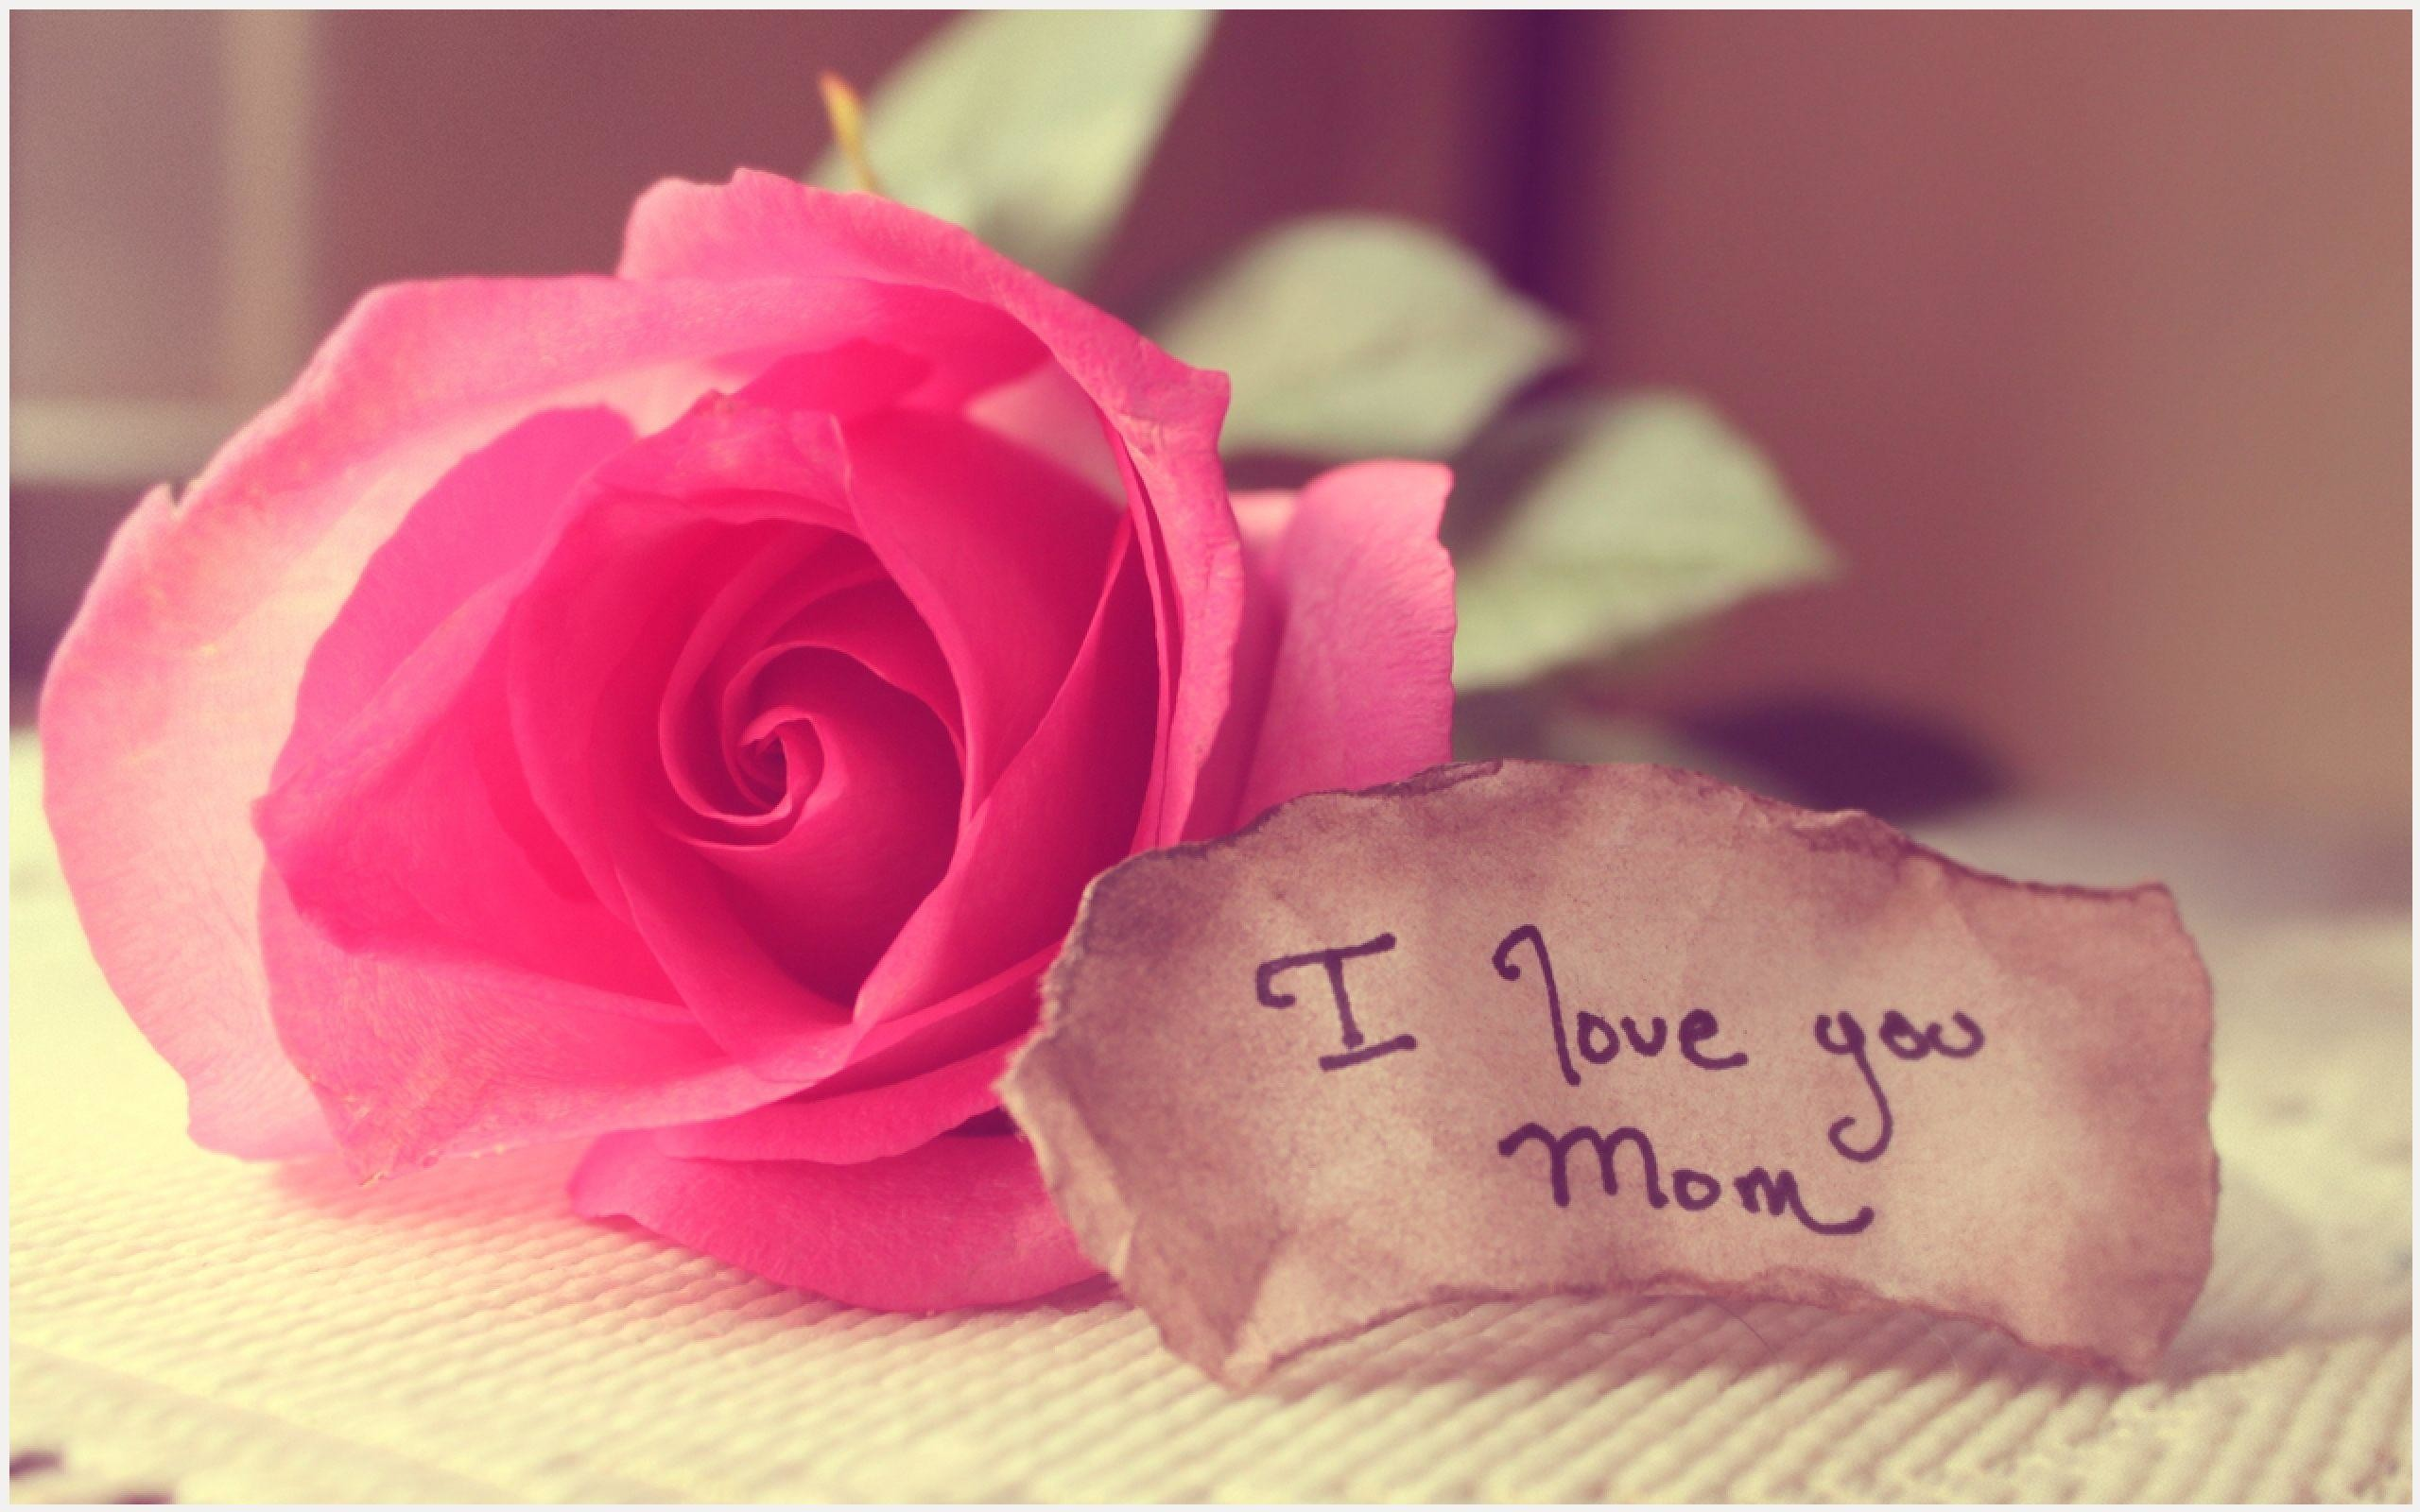 2560x1600 I Love You Mom Quotes From Daughter Wallpapers HD for Mobile Free Download – Mobile